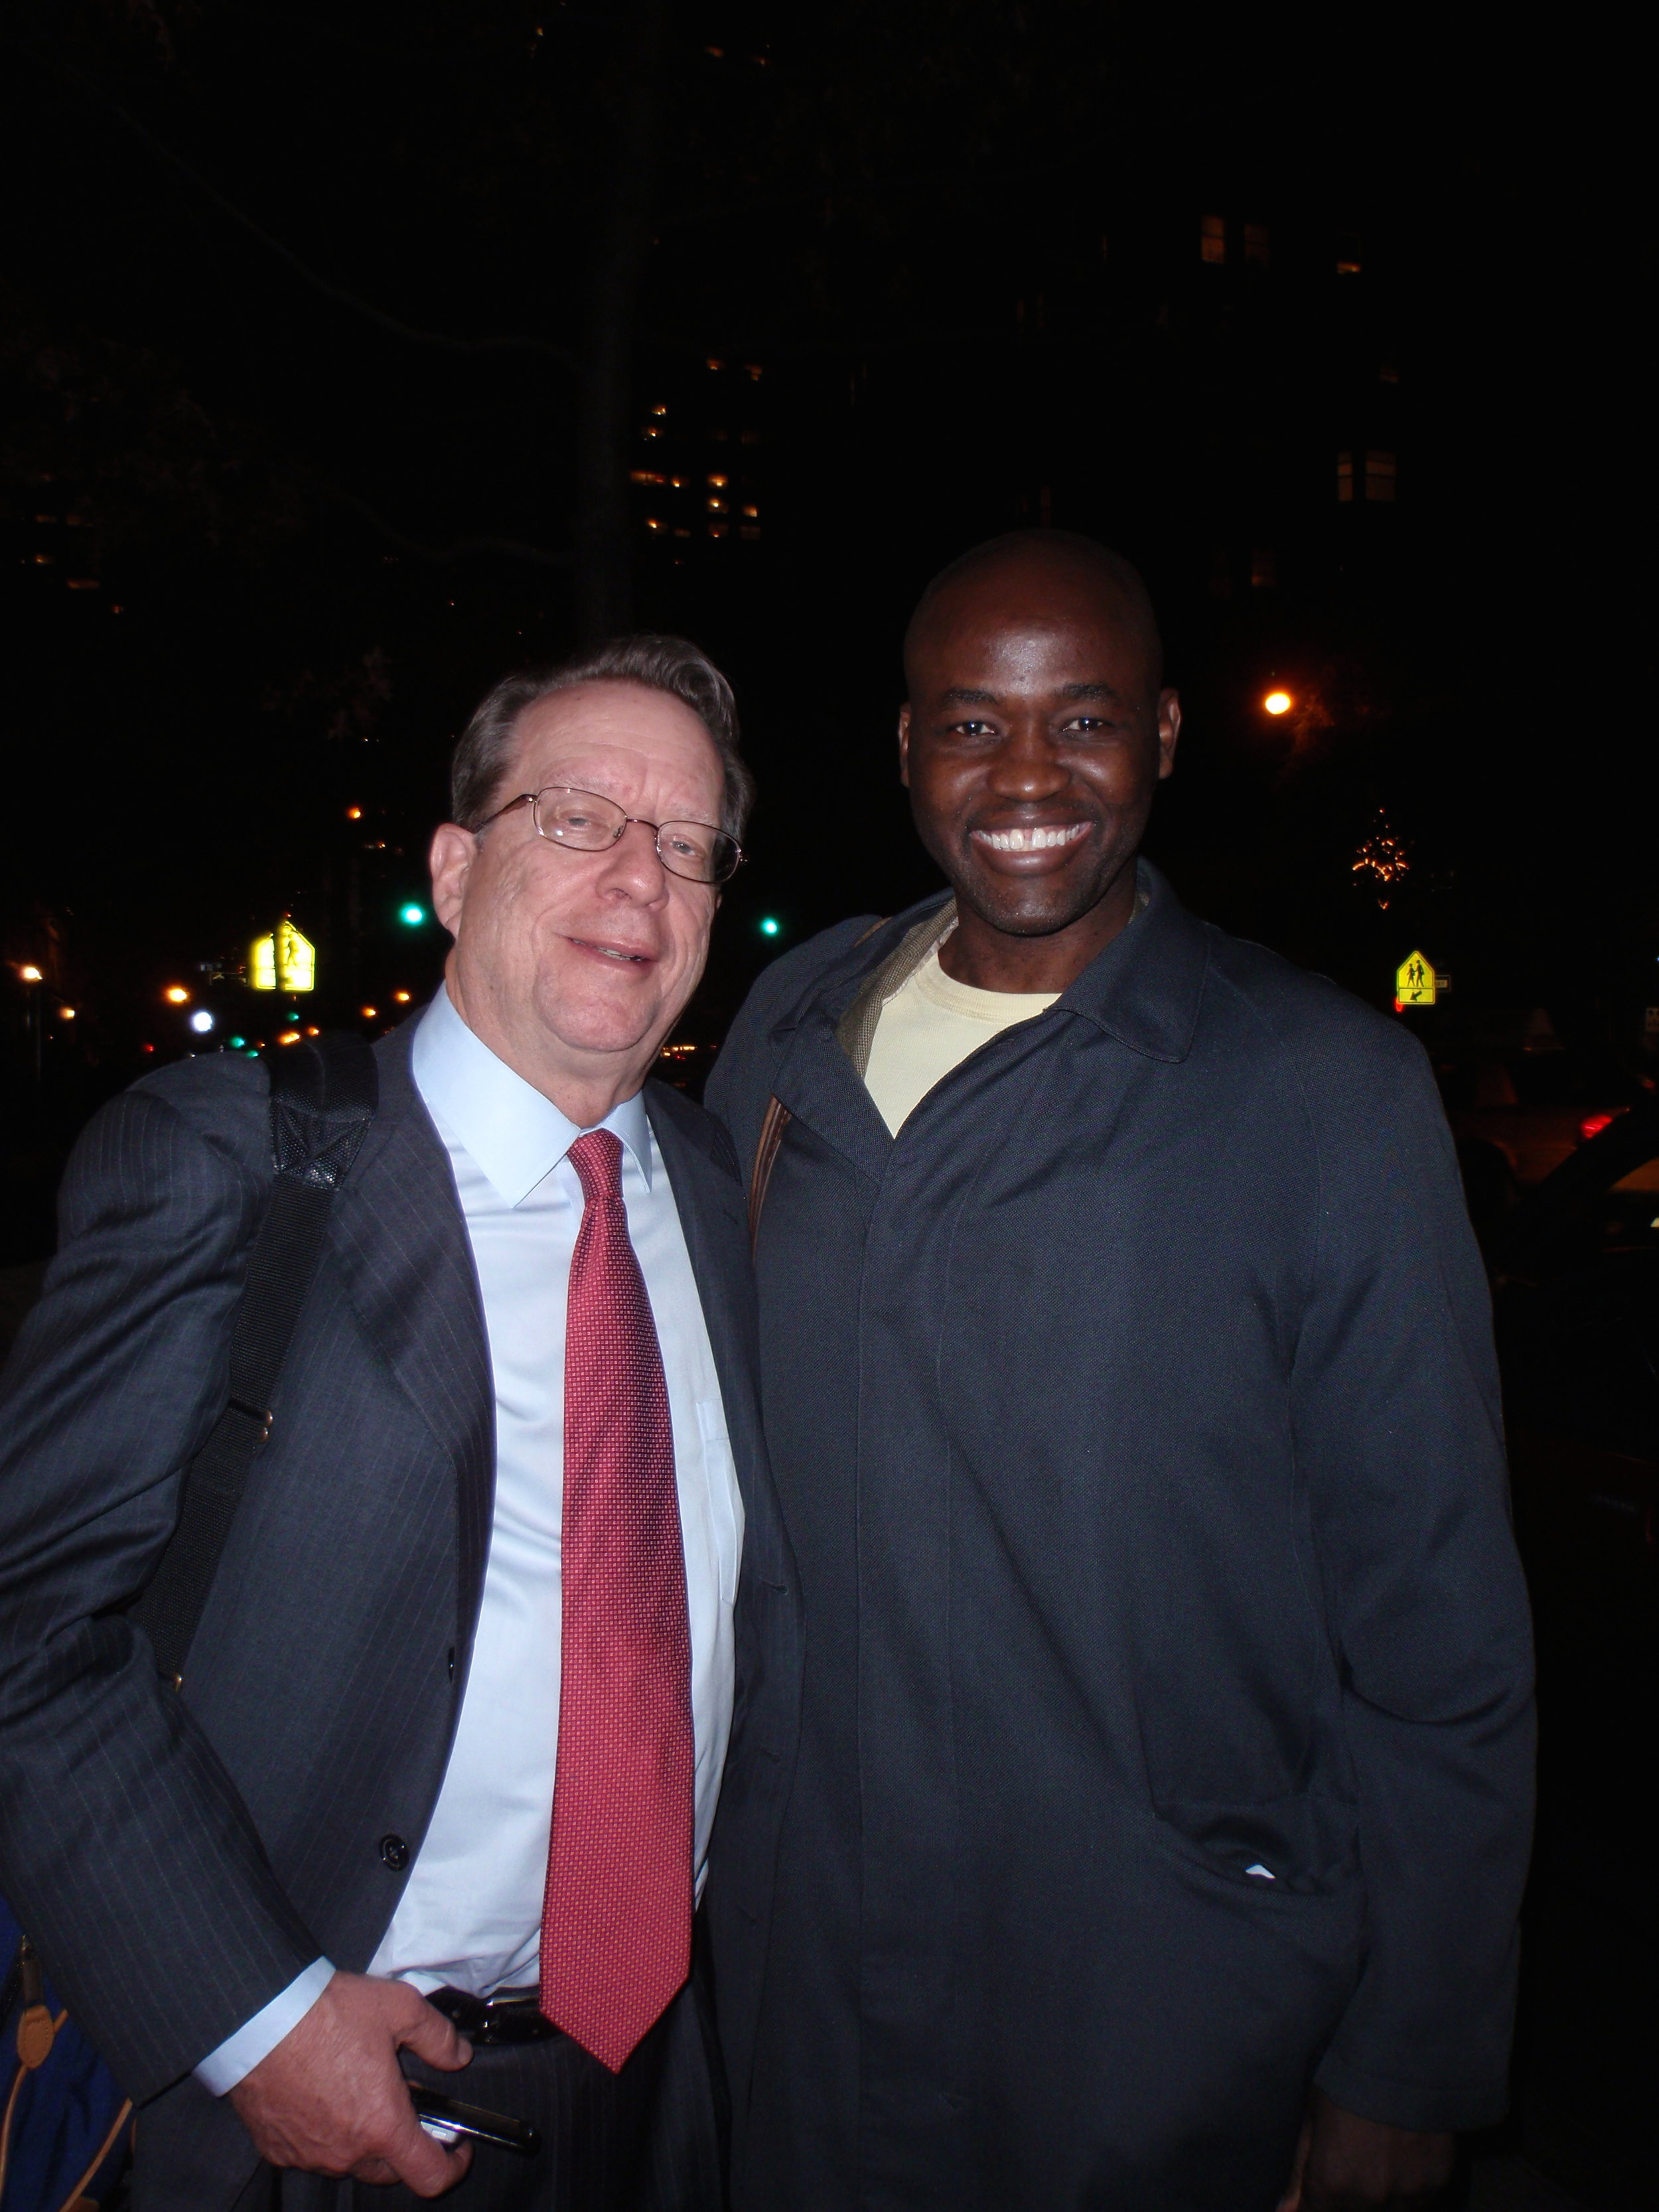 I'm with Time Inc honcho, John Huey, after we ate sushi in my neighborhood circa November 2010.